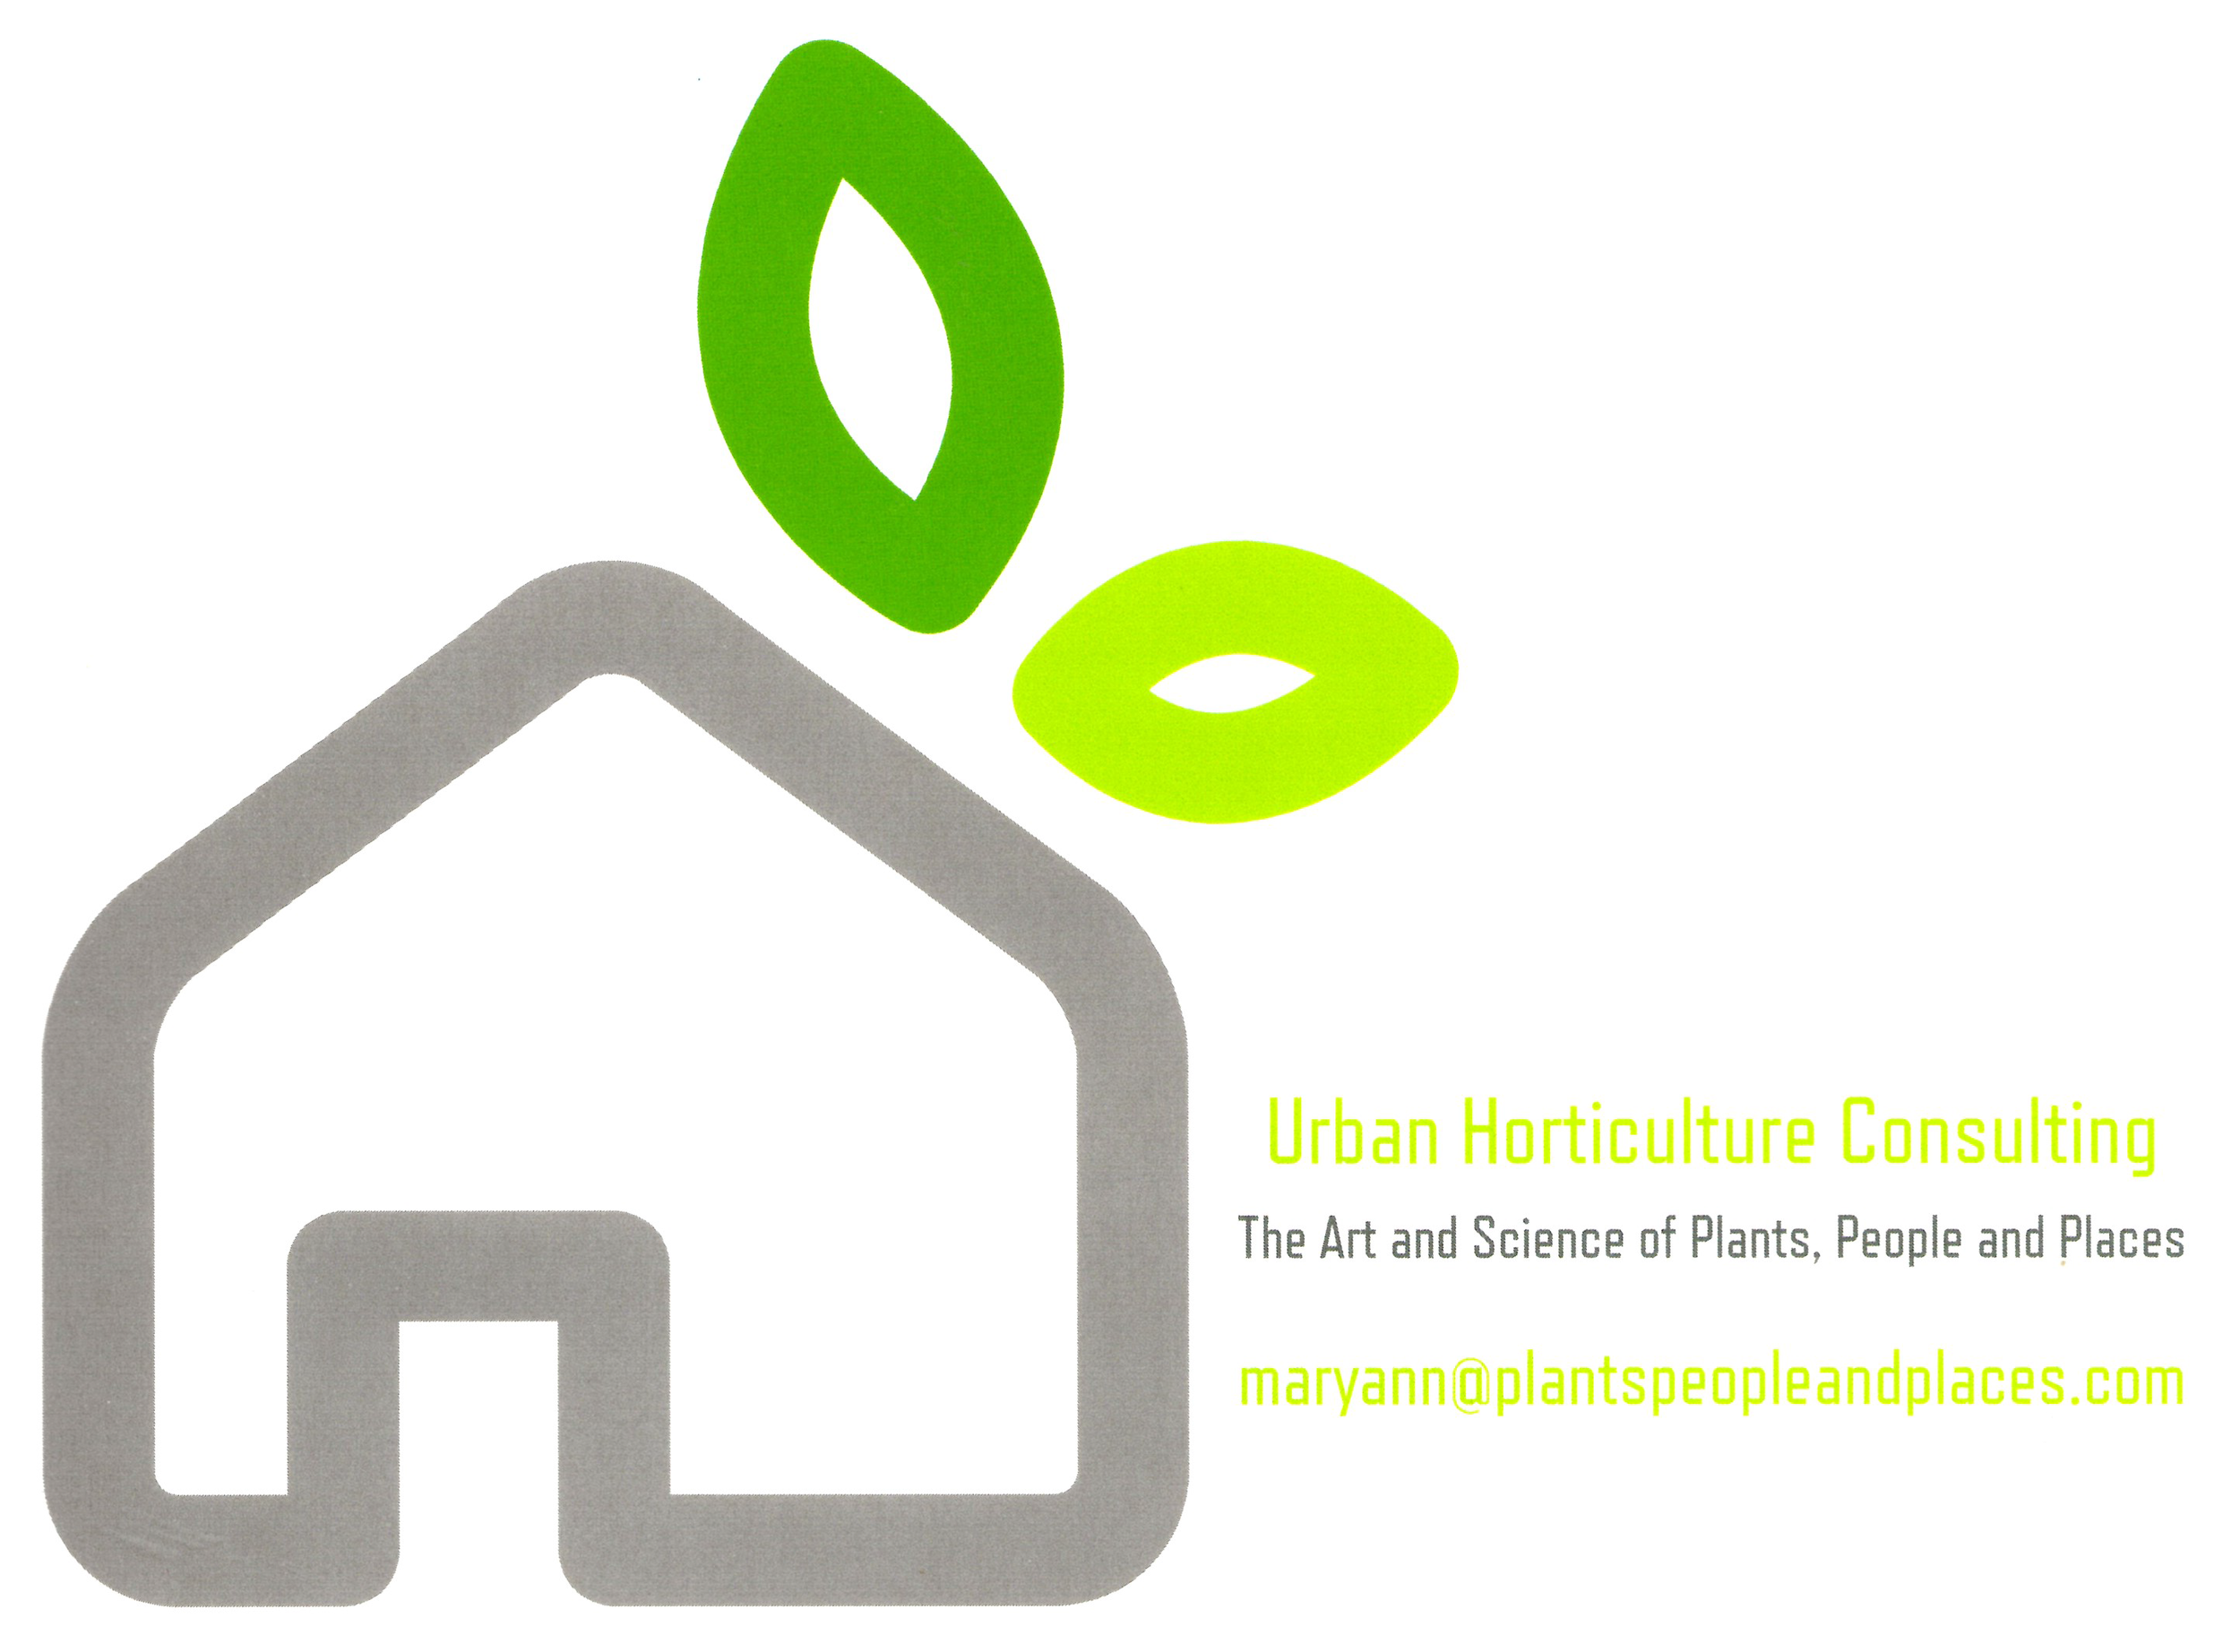 UHC_Urban Hort.Consulting Logo_Horizontal.png